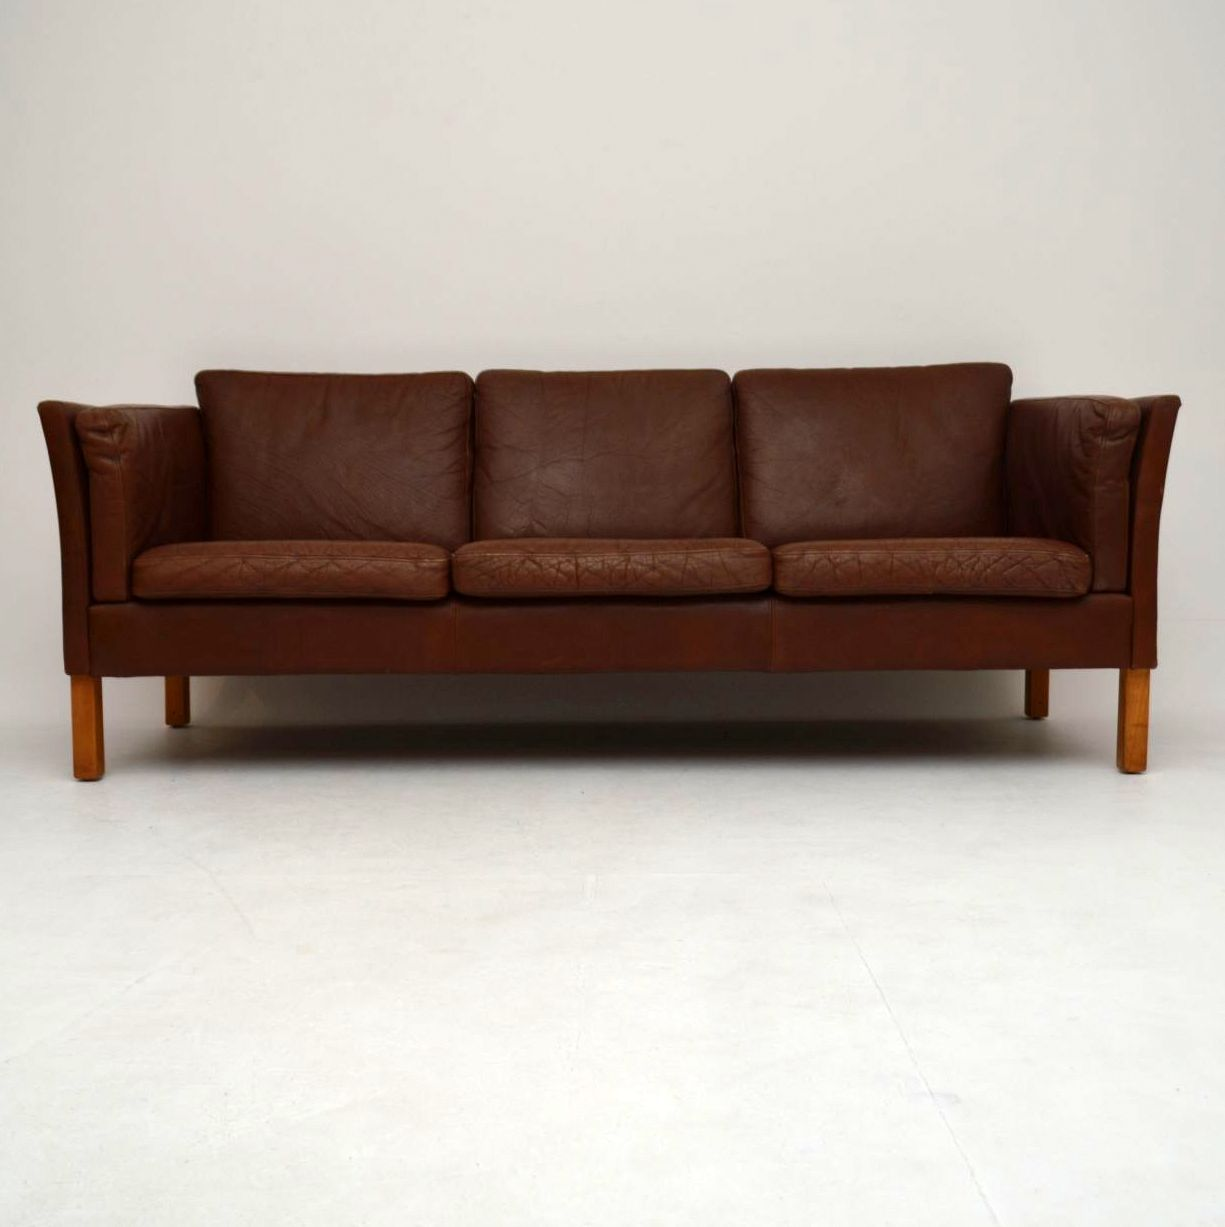 danish style sofa bed uk country furniture retro leather vintageather blog sofas for